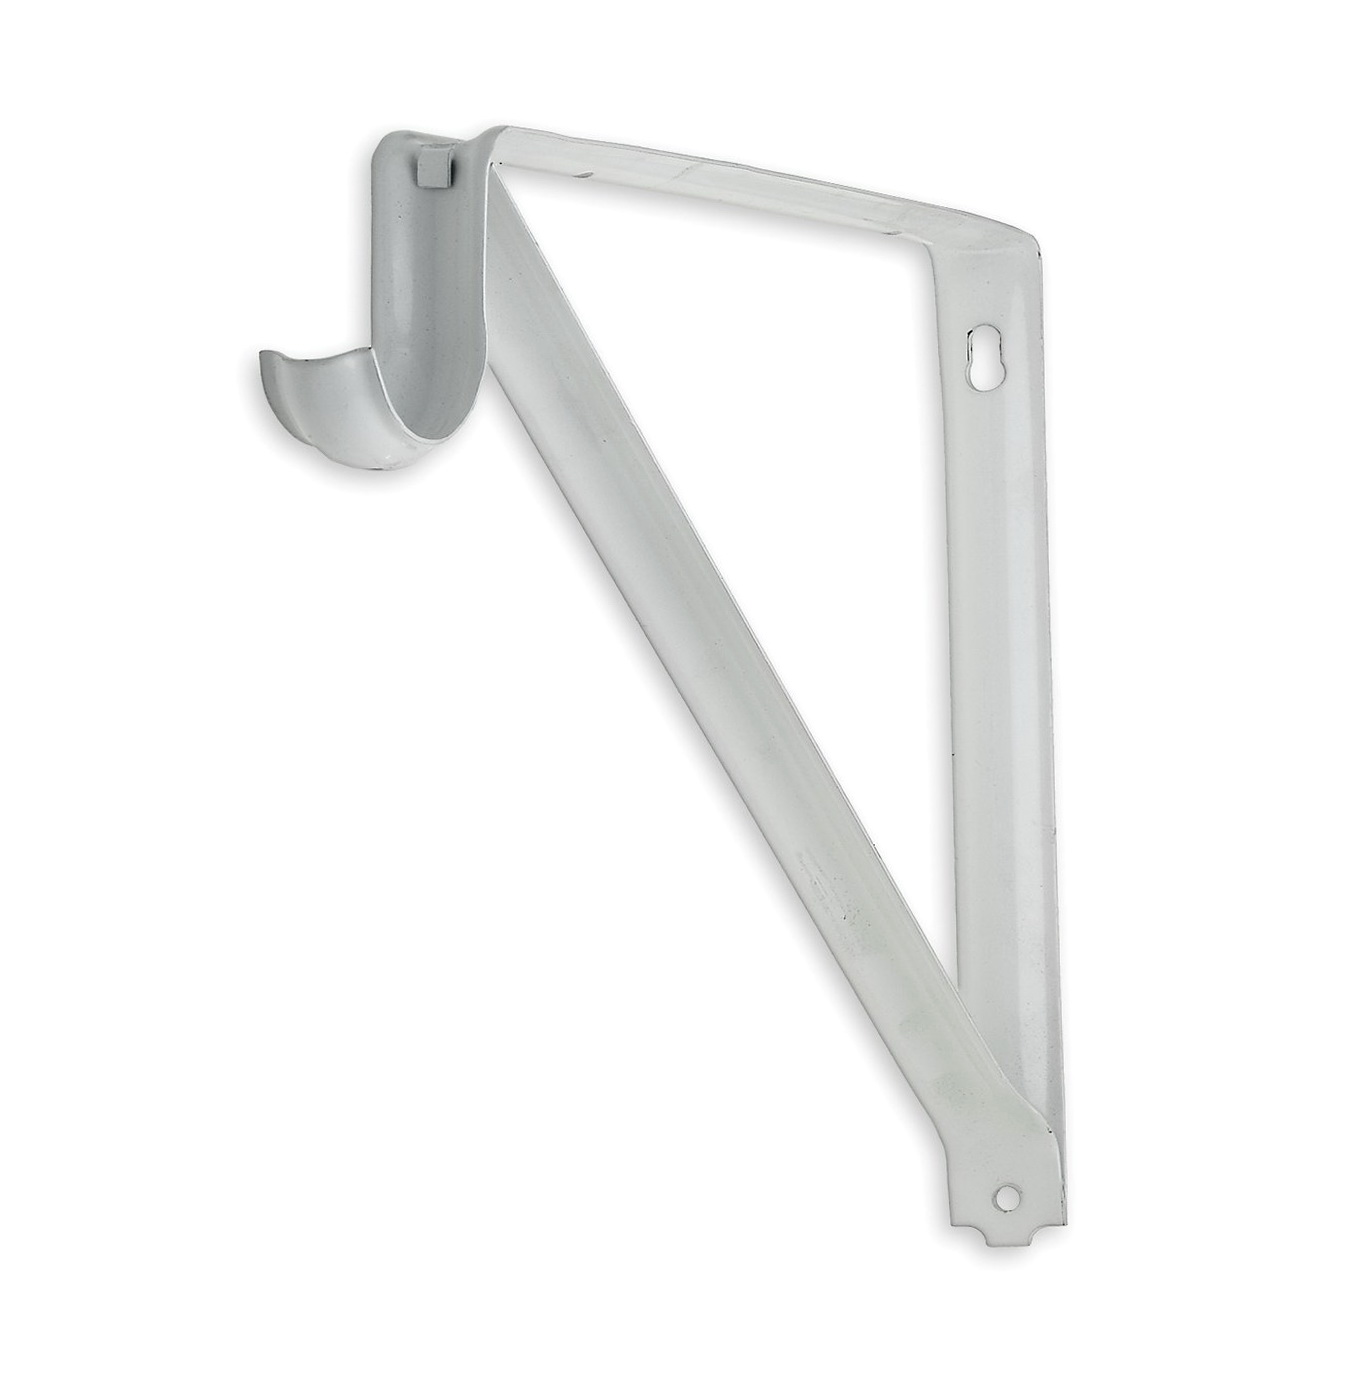 Closet Pole Brackets Hardware Home Design Ideas